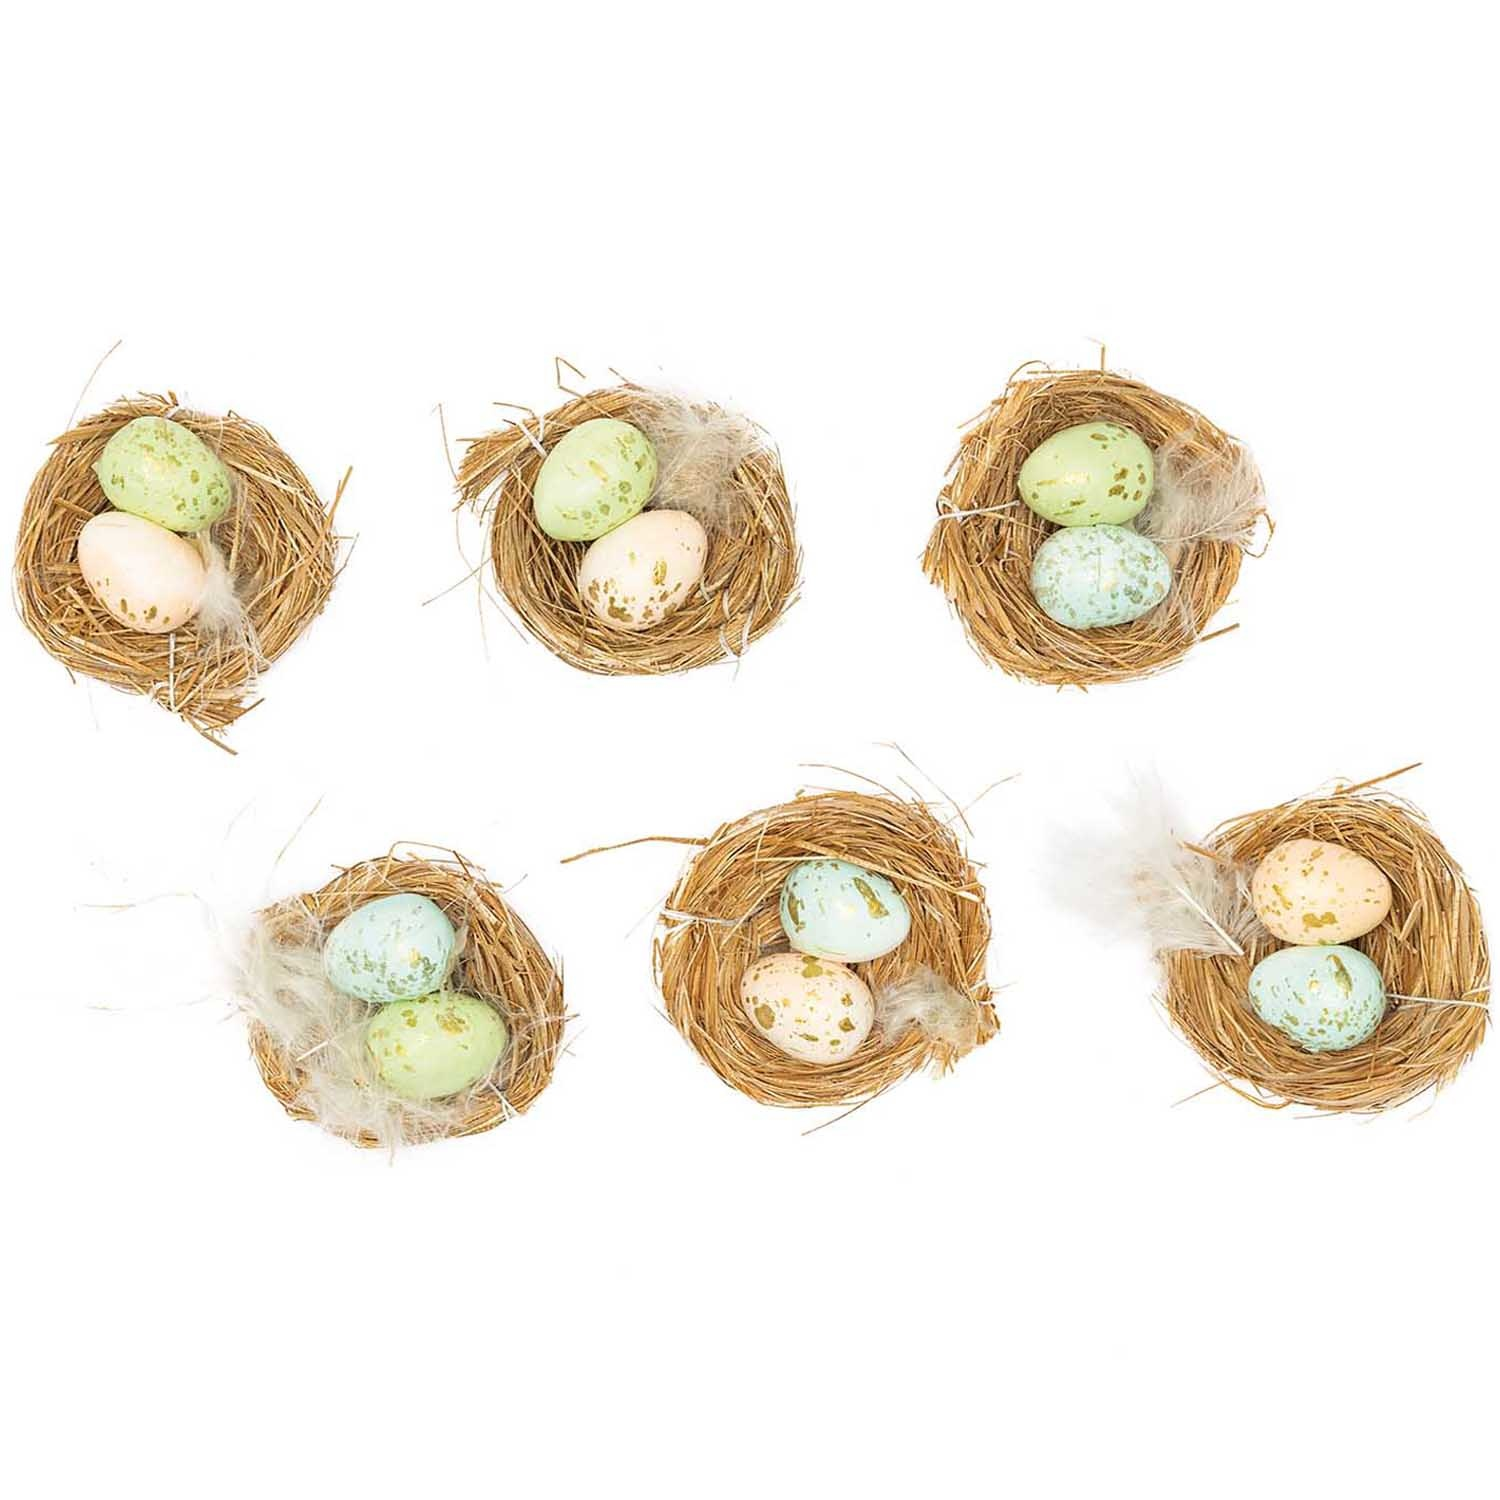 Rico NAY EASTER NEST WITH EGGS LIGHT 6 PC 6 CM